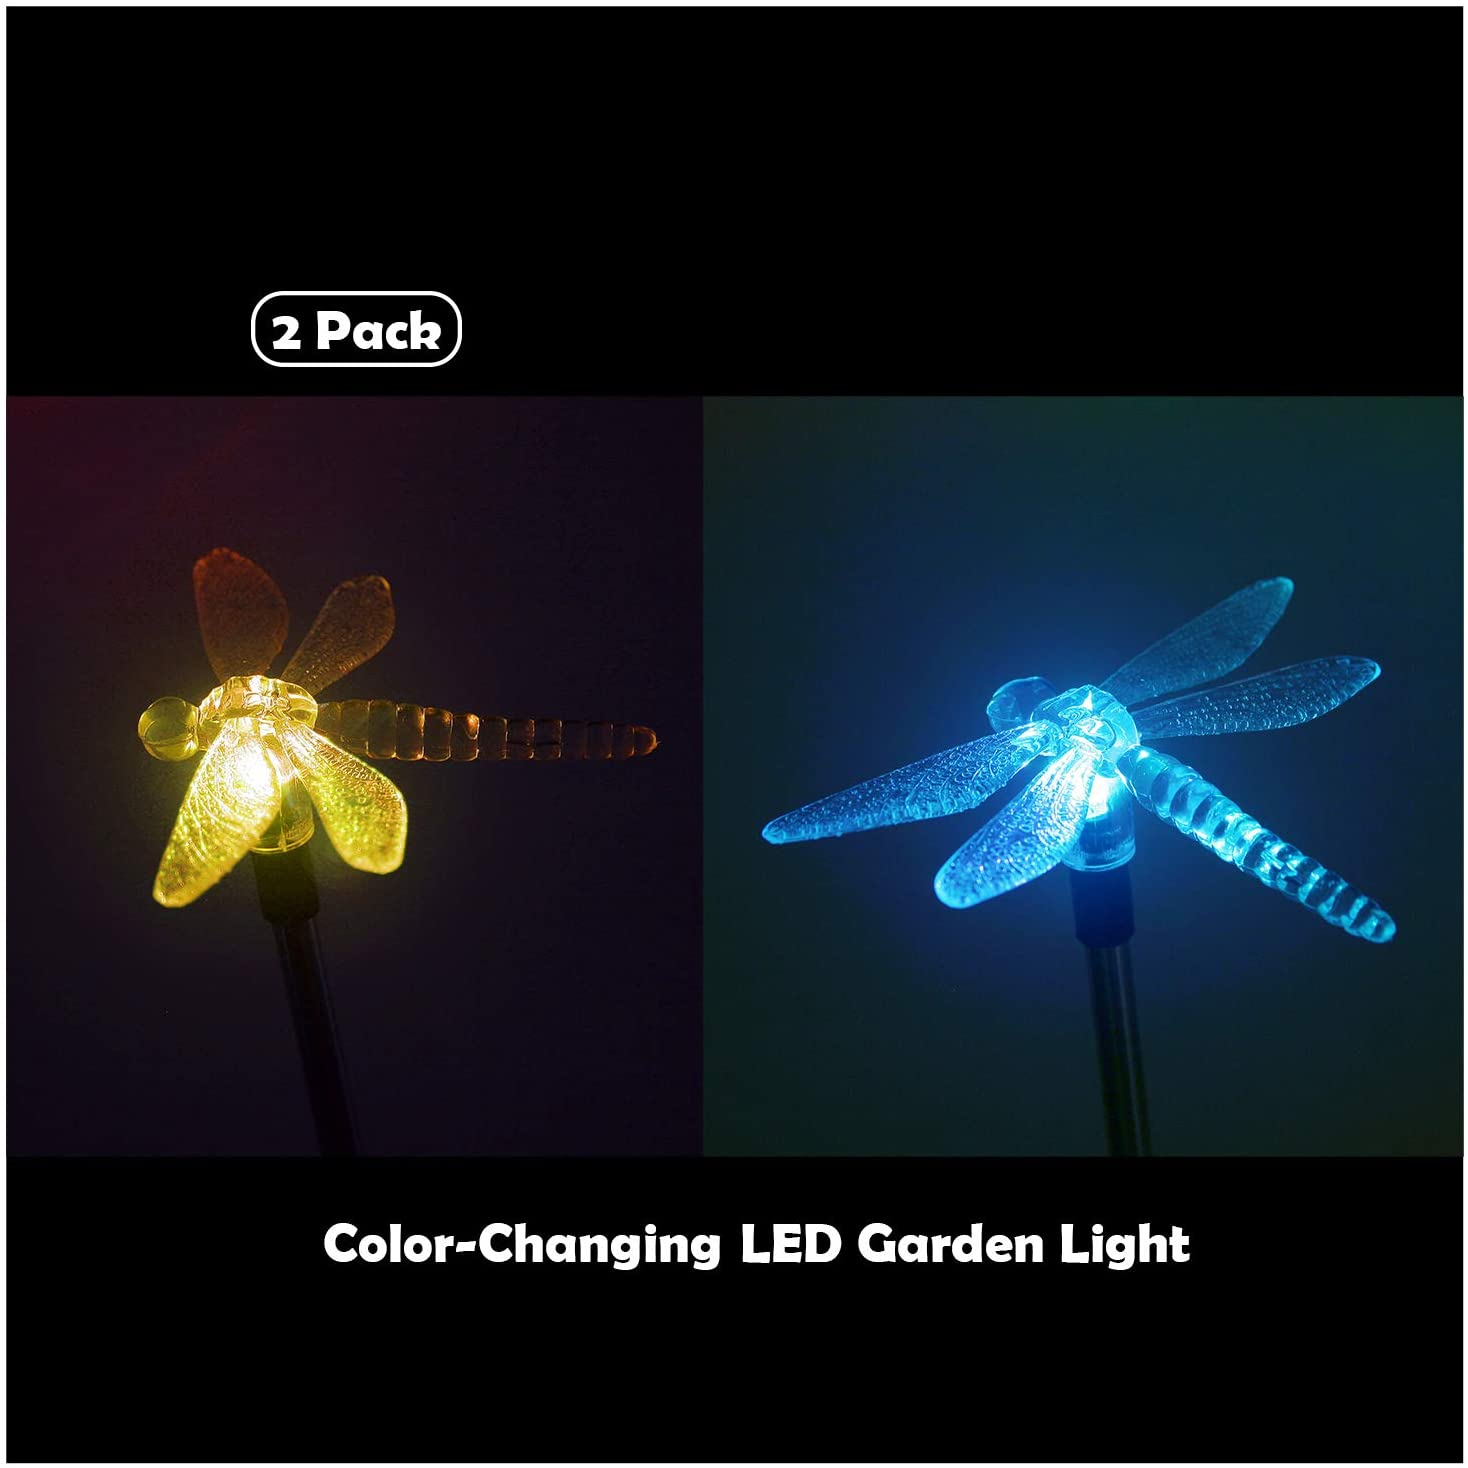 Solar Powered Garden Lights, 2 Pack Color Changing LED Landscape Path Lights Outdoor Figurine Lights in-ground Light Decorative Stake Light for Pathway Lawn Patio Driveway Yard, Dragonfly